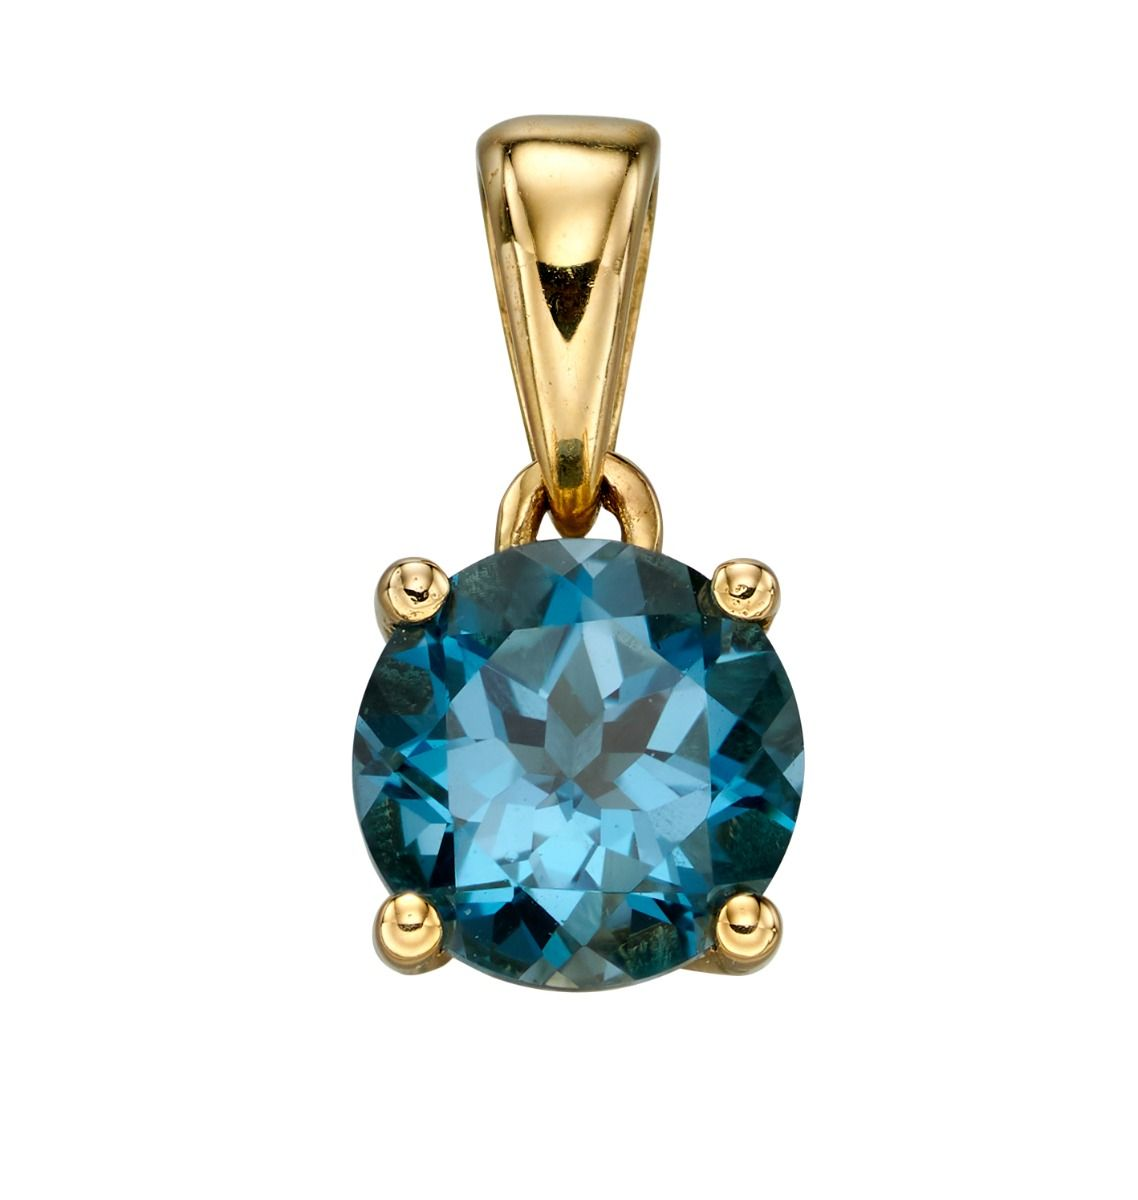 9ct Gold and Blue London Topaz gemstone, the birthstone for December, pendant